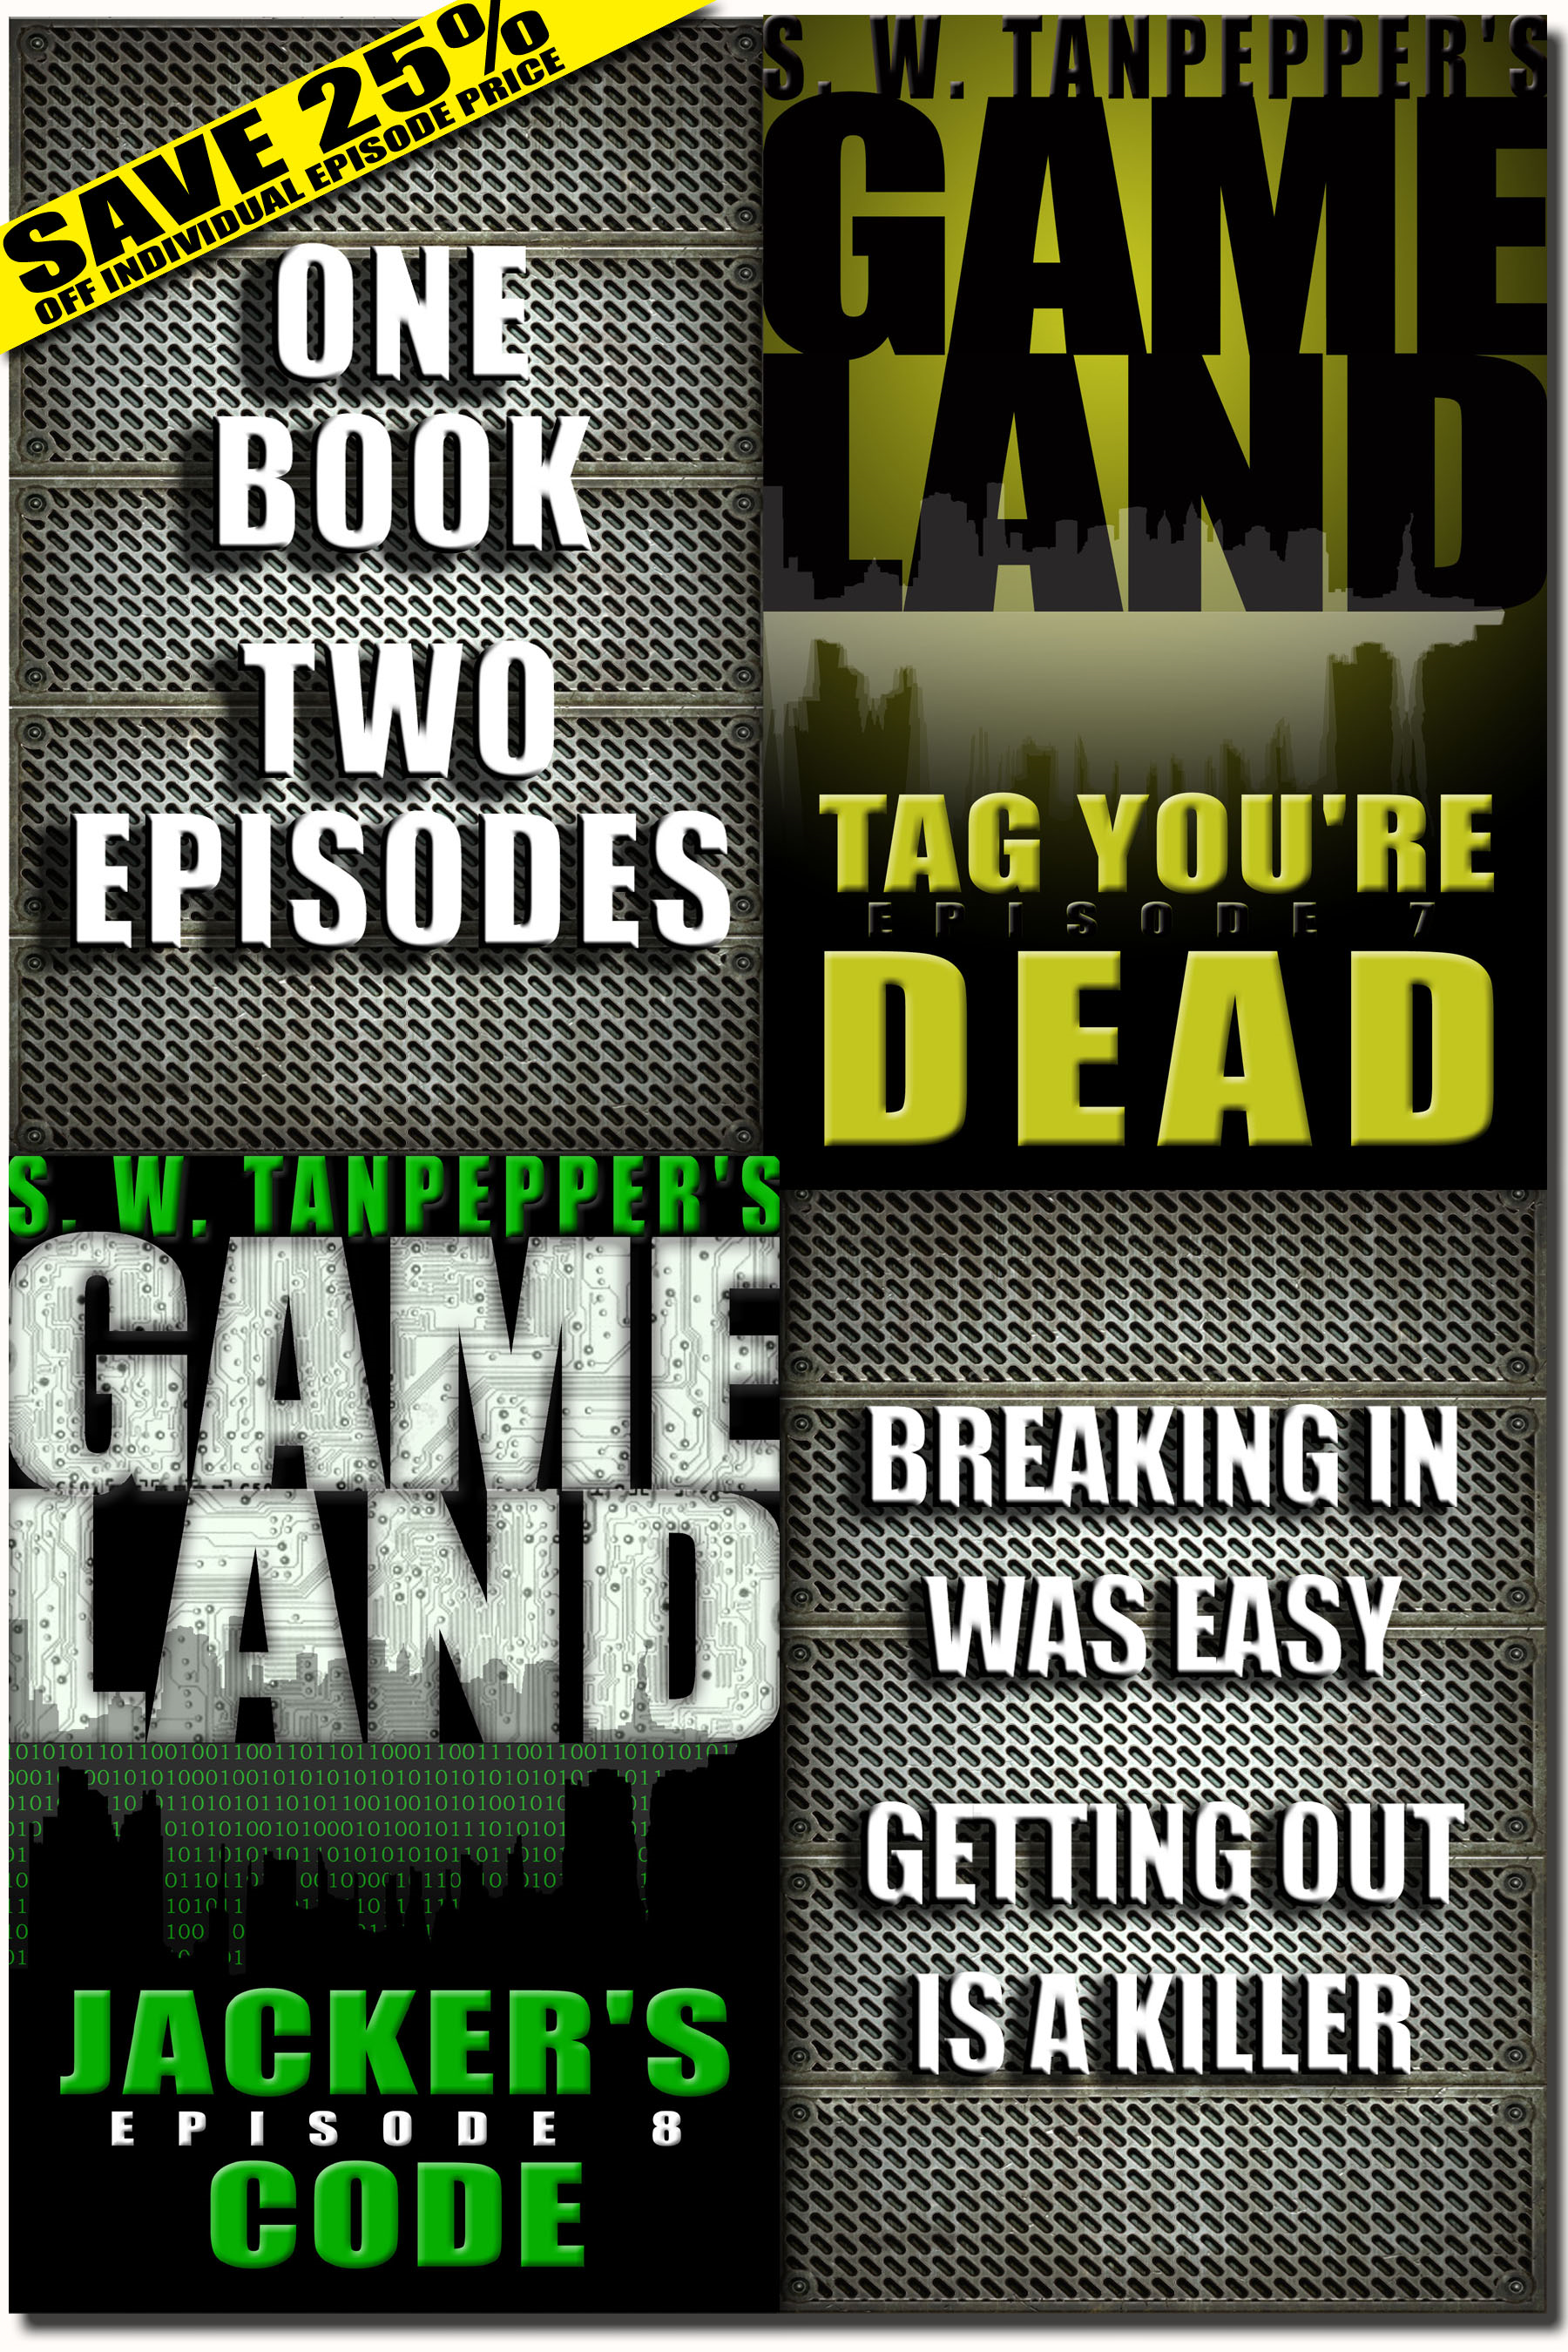 Tag, You're Dead + Jacker's Code (Episodes 7 + 8, S.W. Tanpepper's GAMELAND)